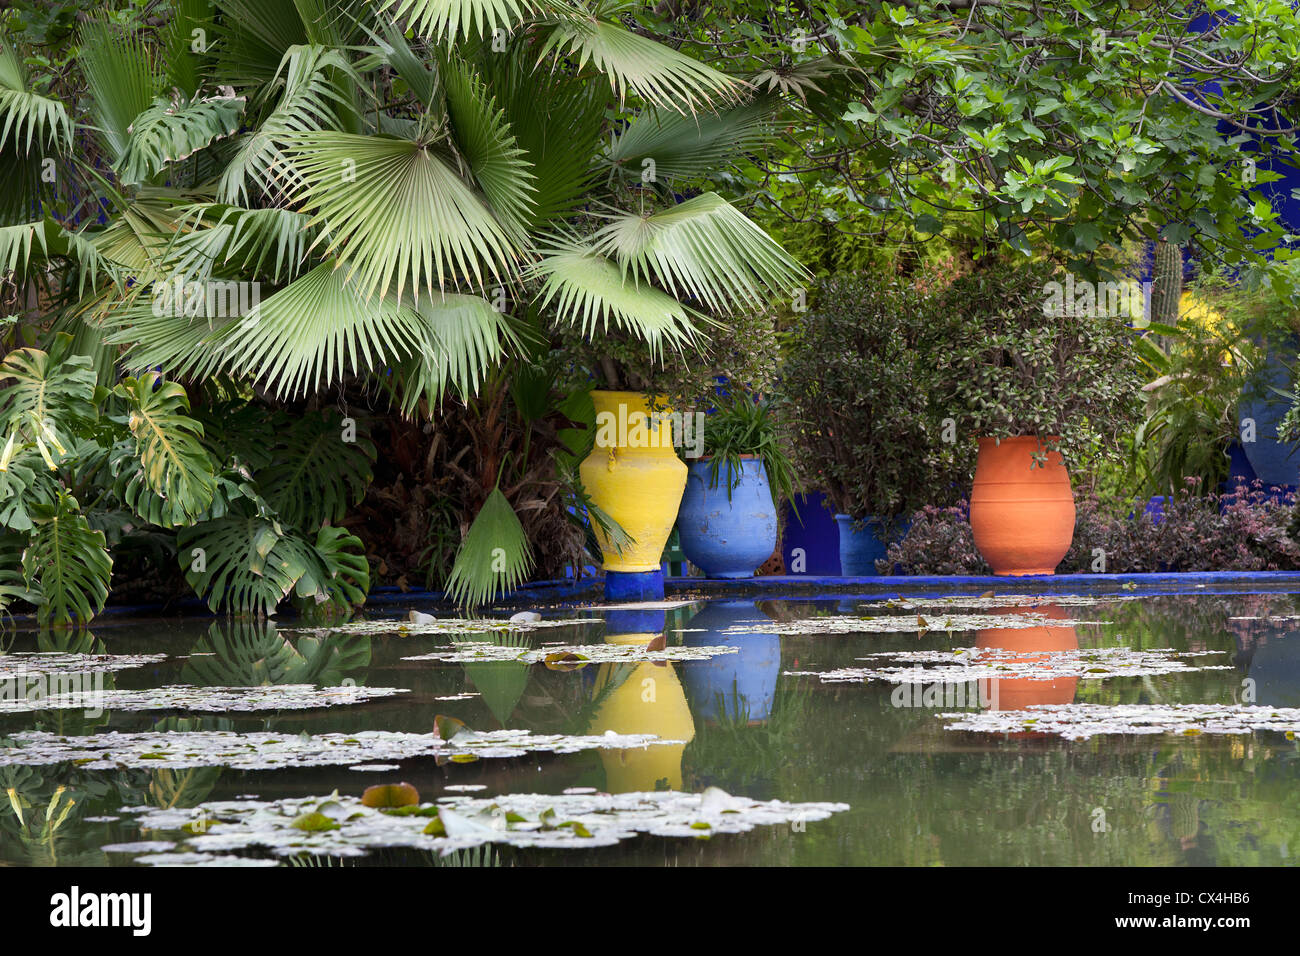 Marrakesh Morocco, April 1, 2012, Pond and flower pots in the Majorelle gardens - Stock Image